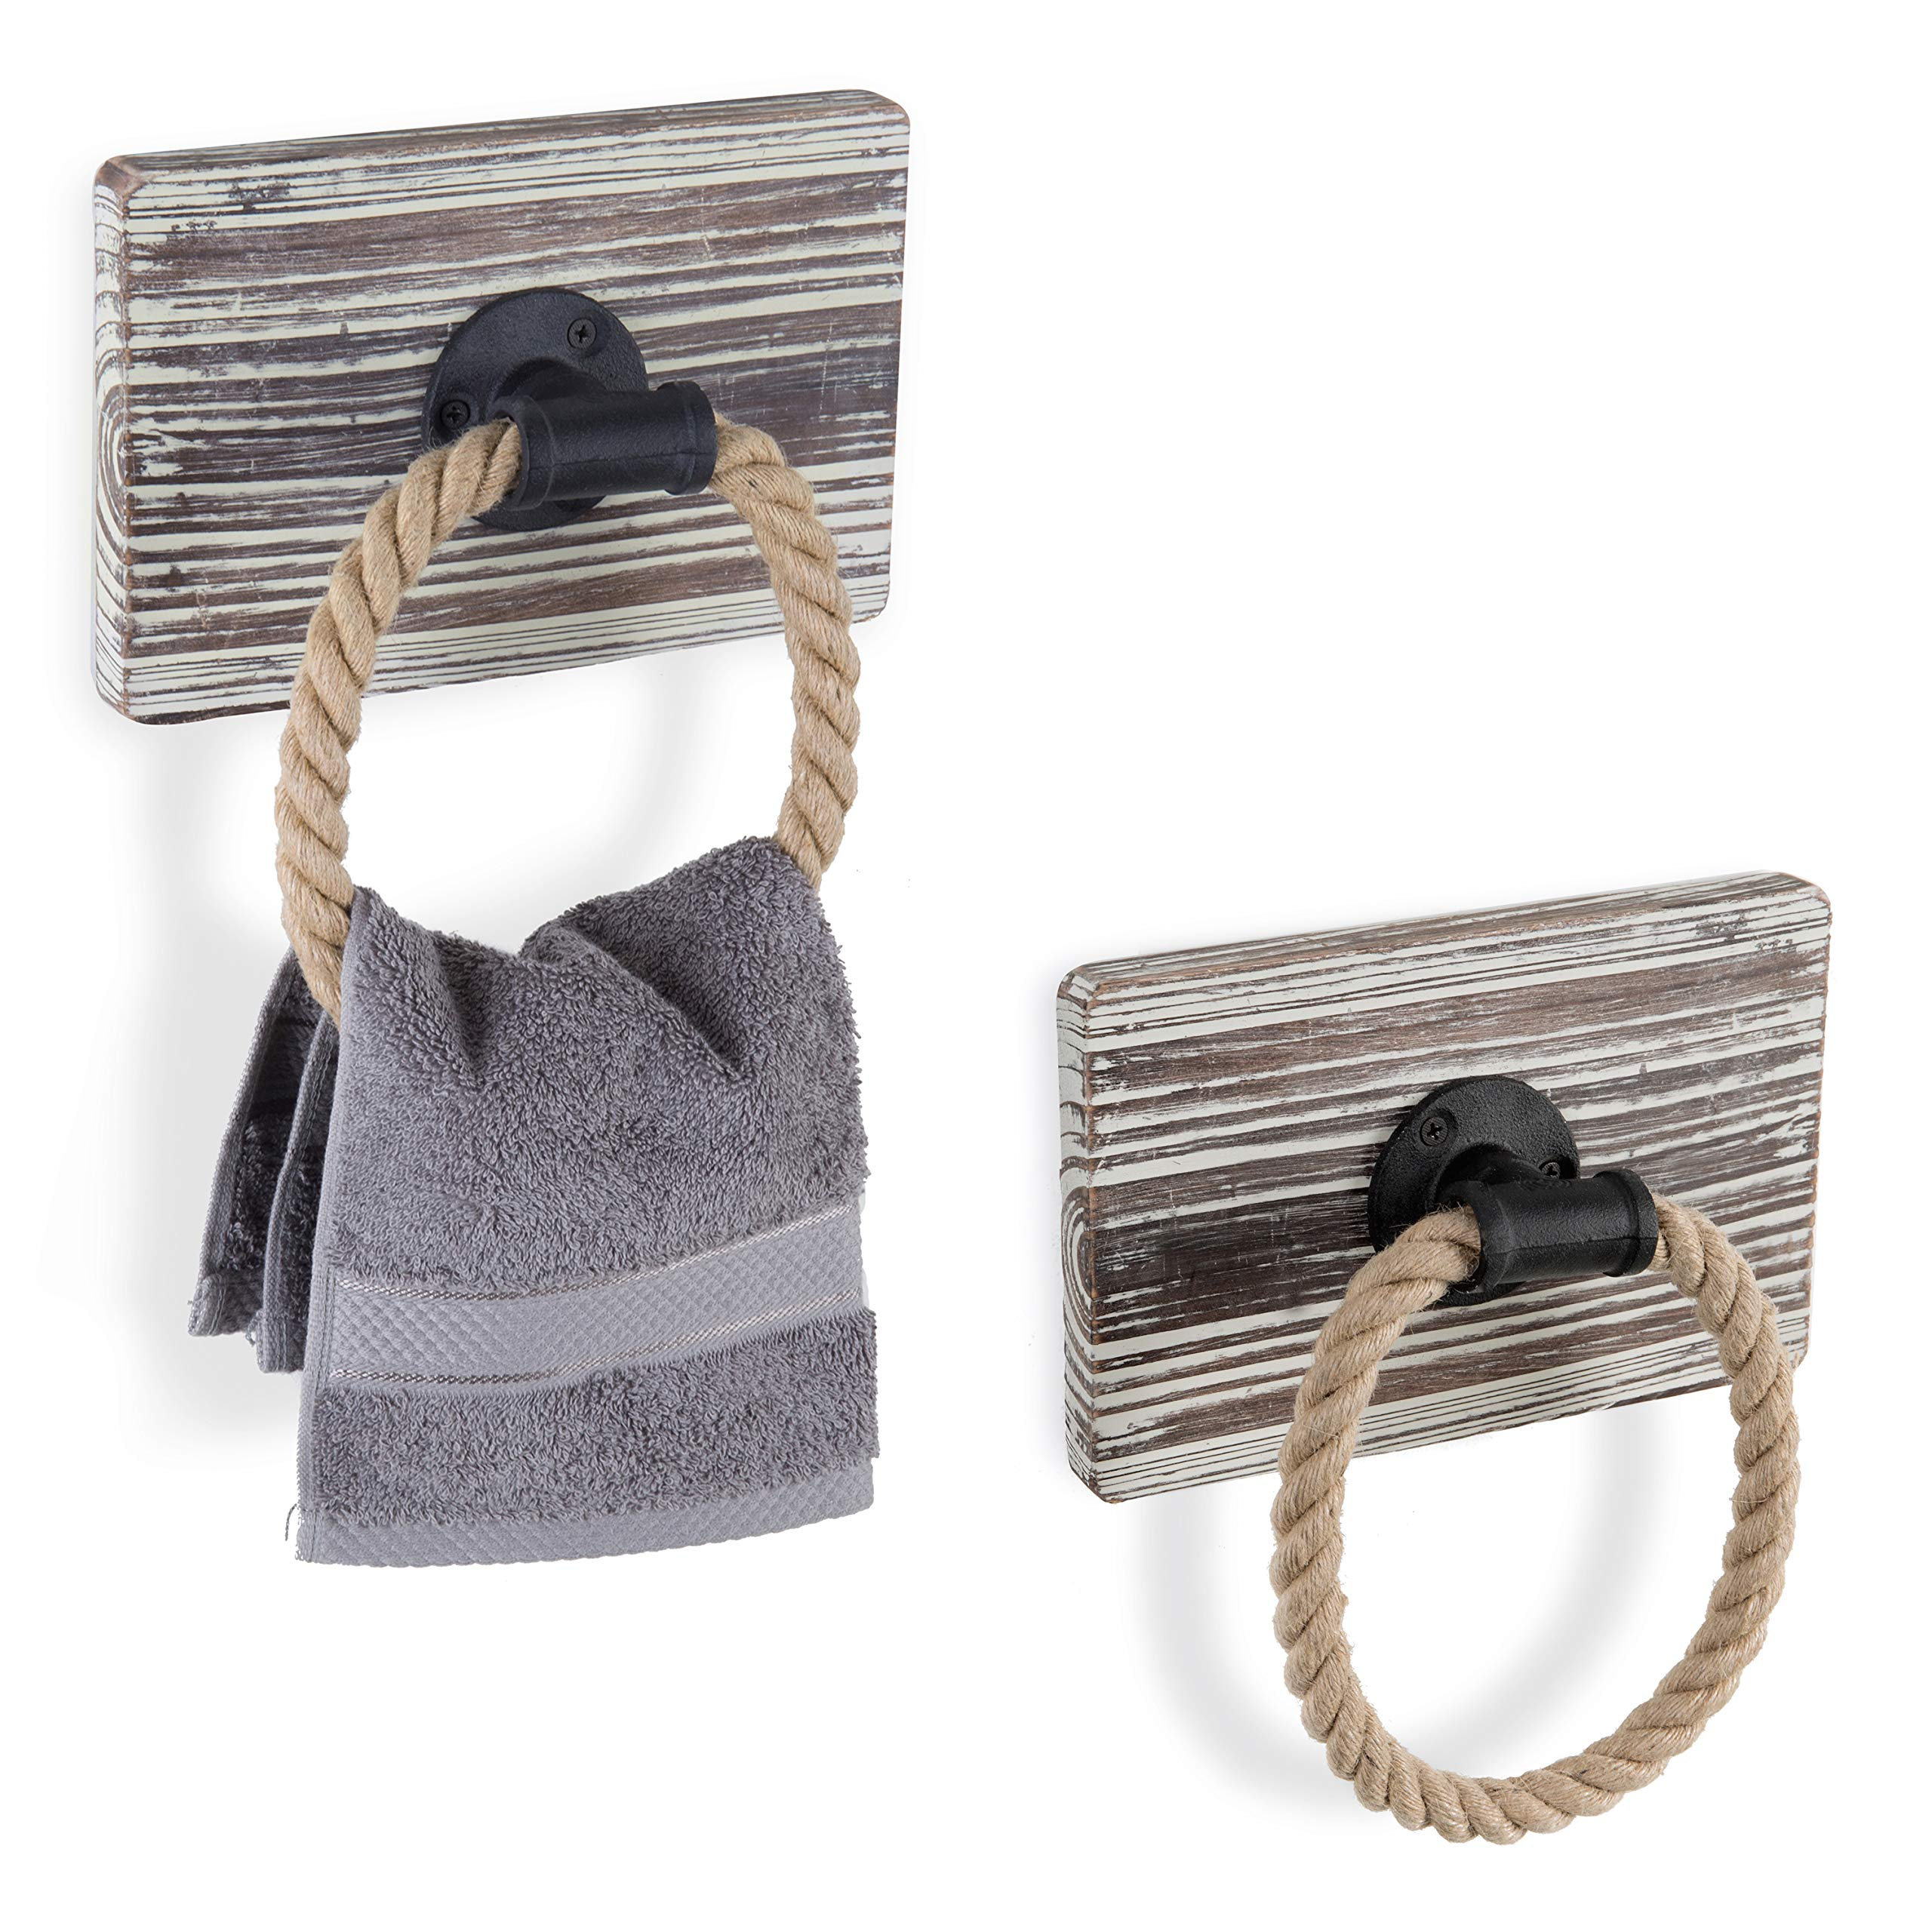 MyGift Urban Rustic Wall-Mounted Torched Wood & Rope Towel Rings, Set of 2 by MyGift